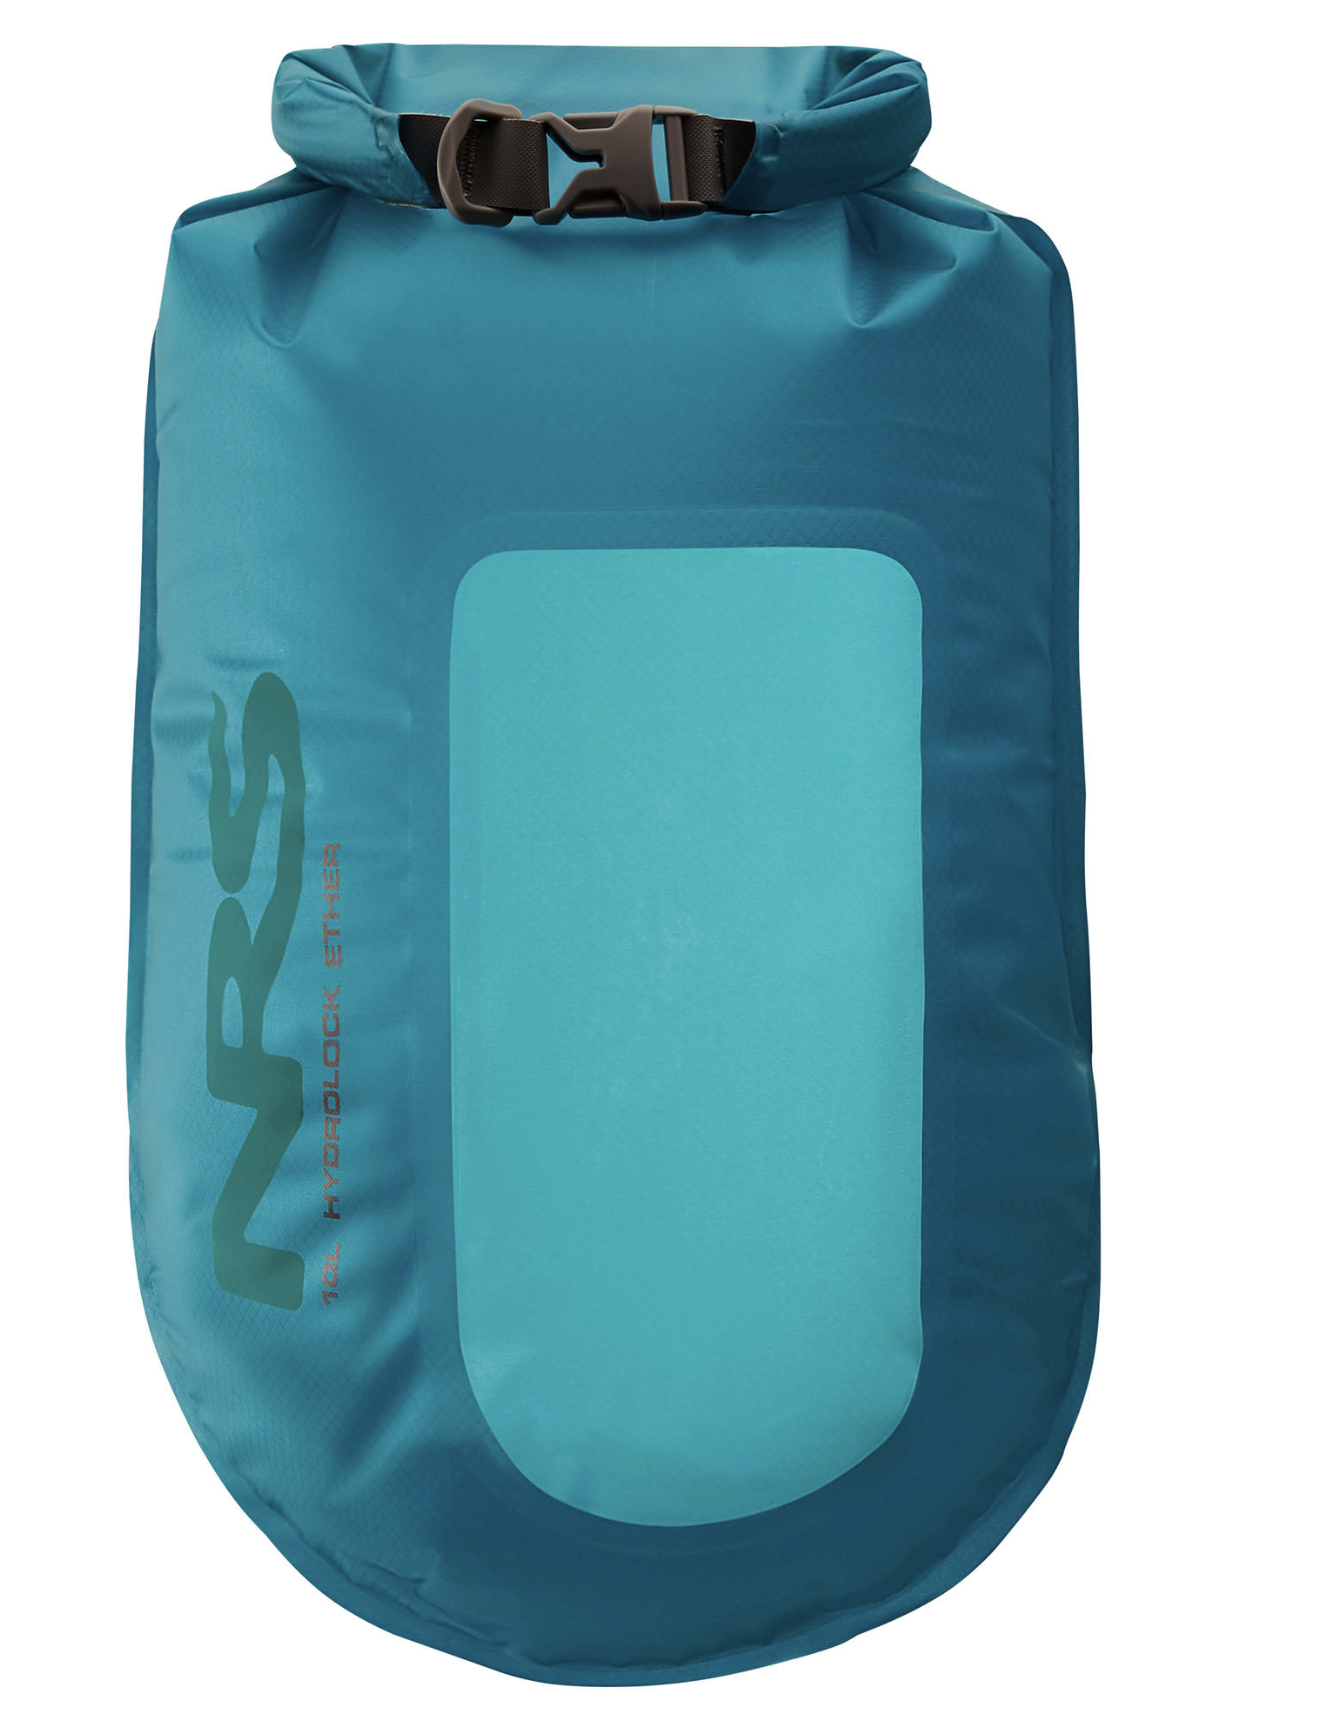 Bags, Boxes, Cases & Packs: Ether HydroLock Dry Sack by NRS - Image 4821